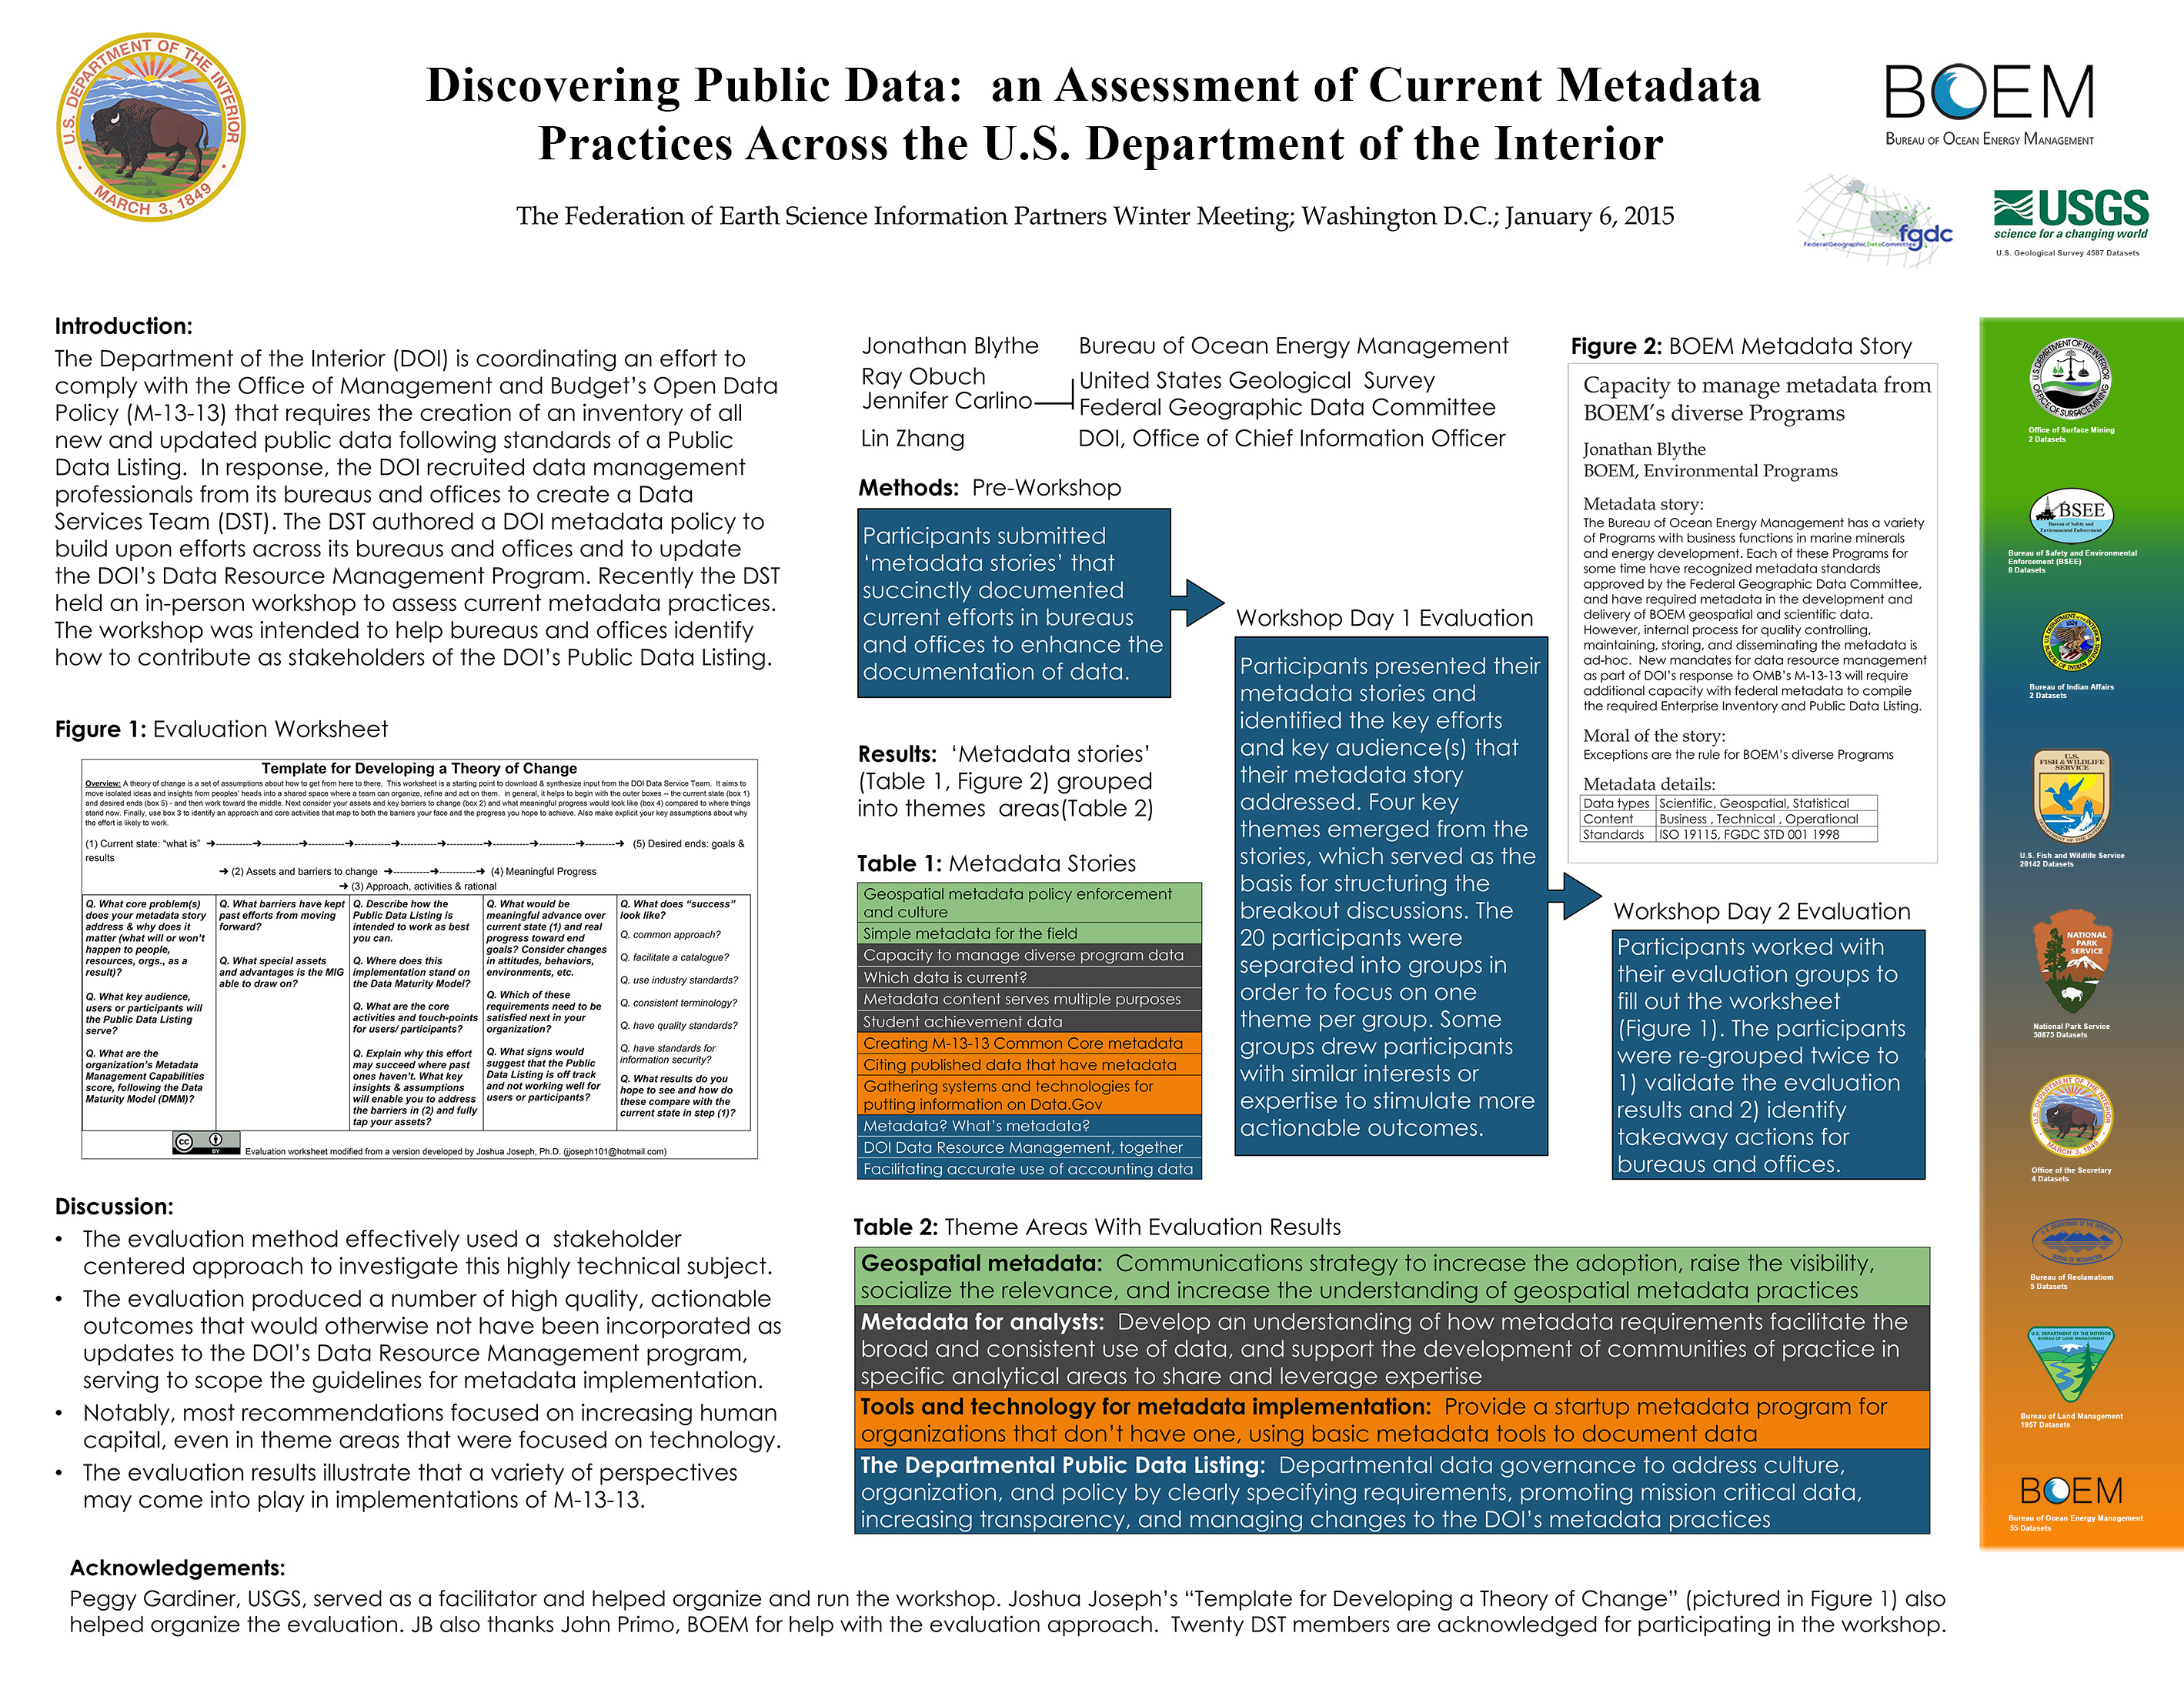 Discovering Public Data An Assessment Of Current Metadata Practices